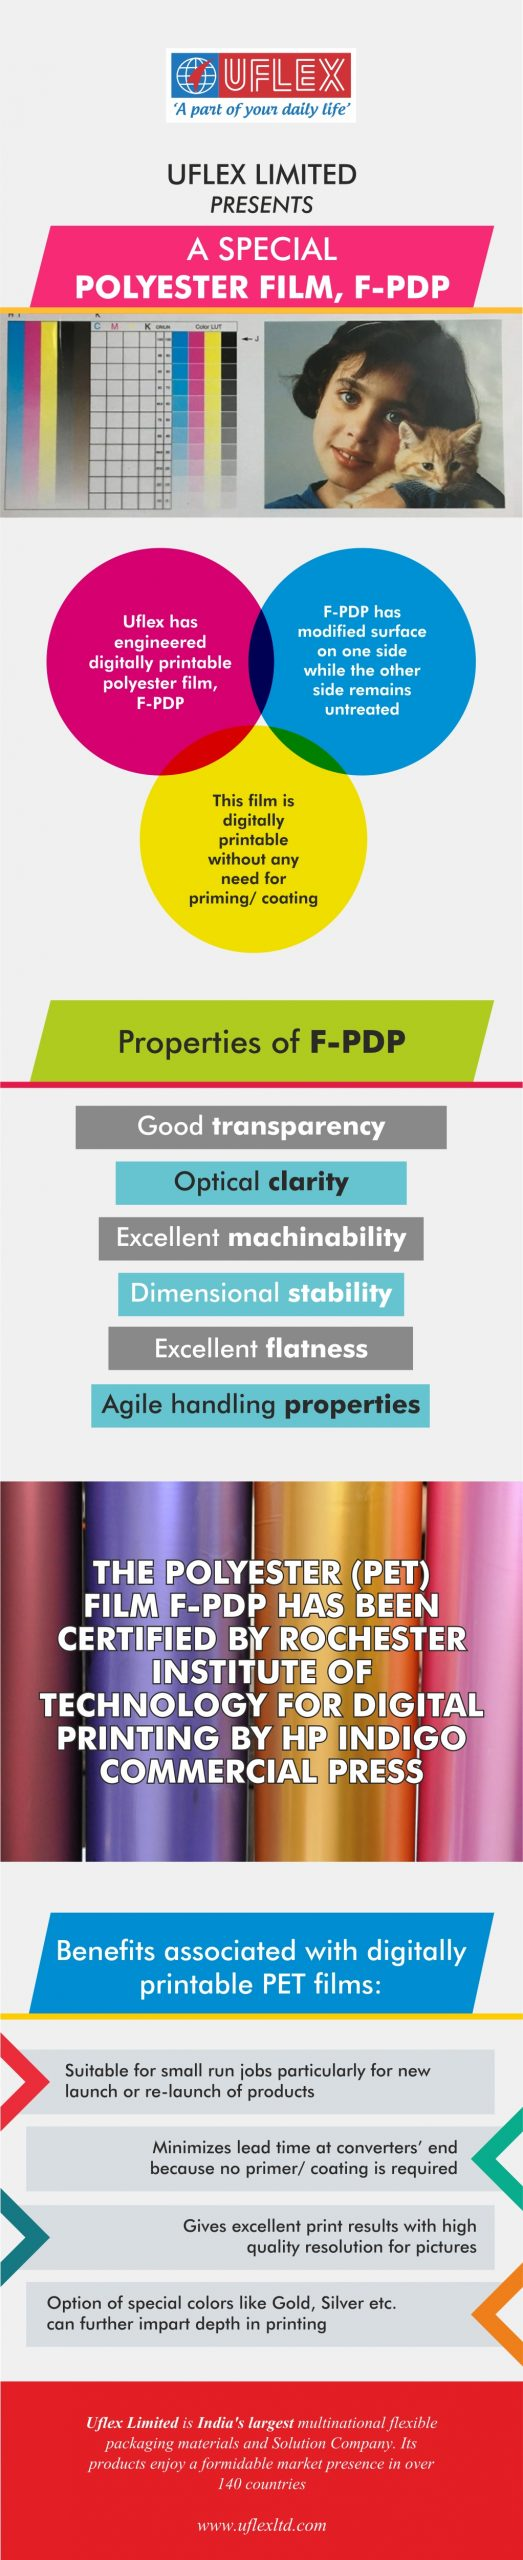 UFLEX LIMITED PRESENTS A SPECIAL POLYESTER FILM, F-PDP